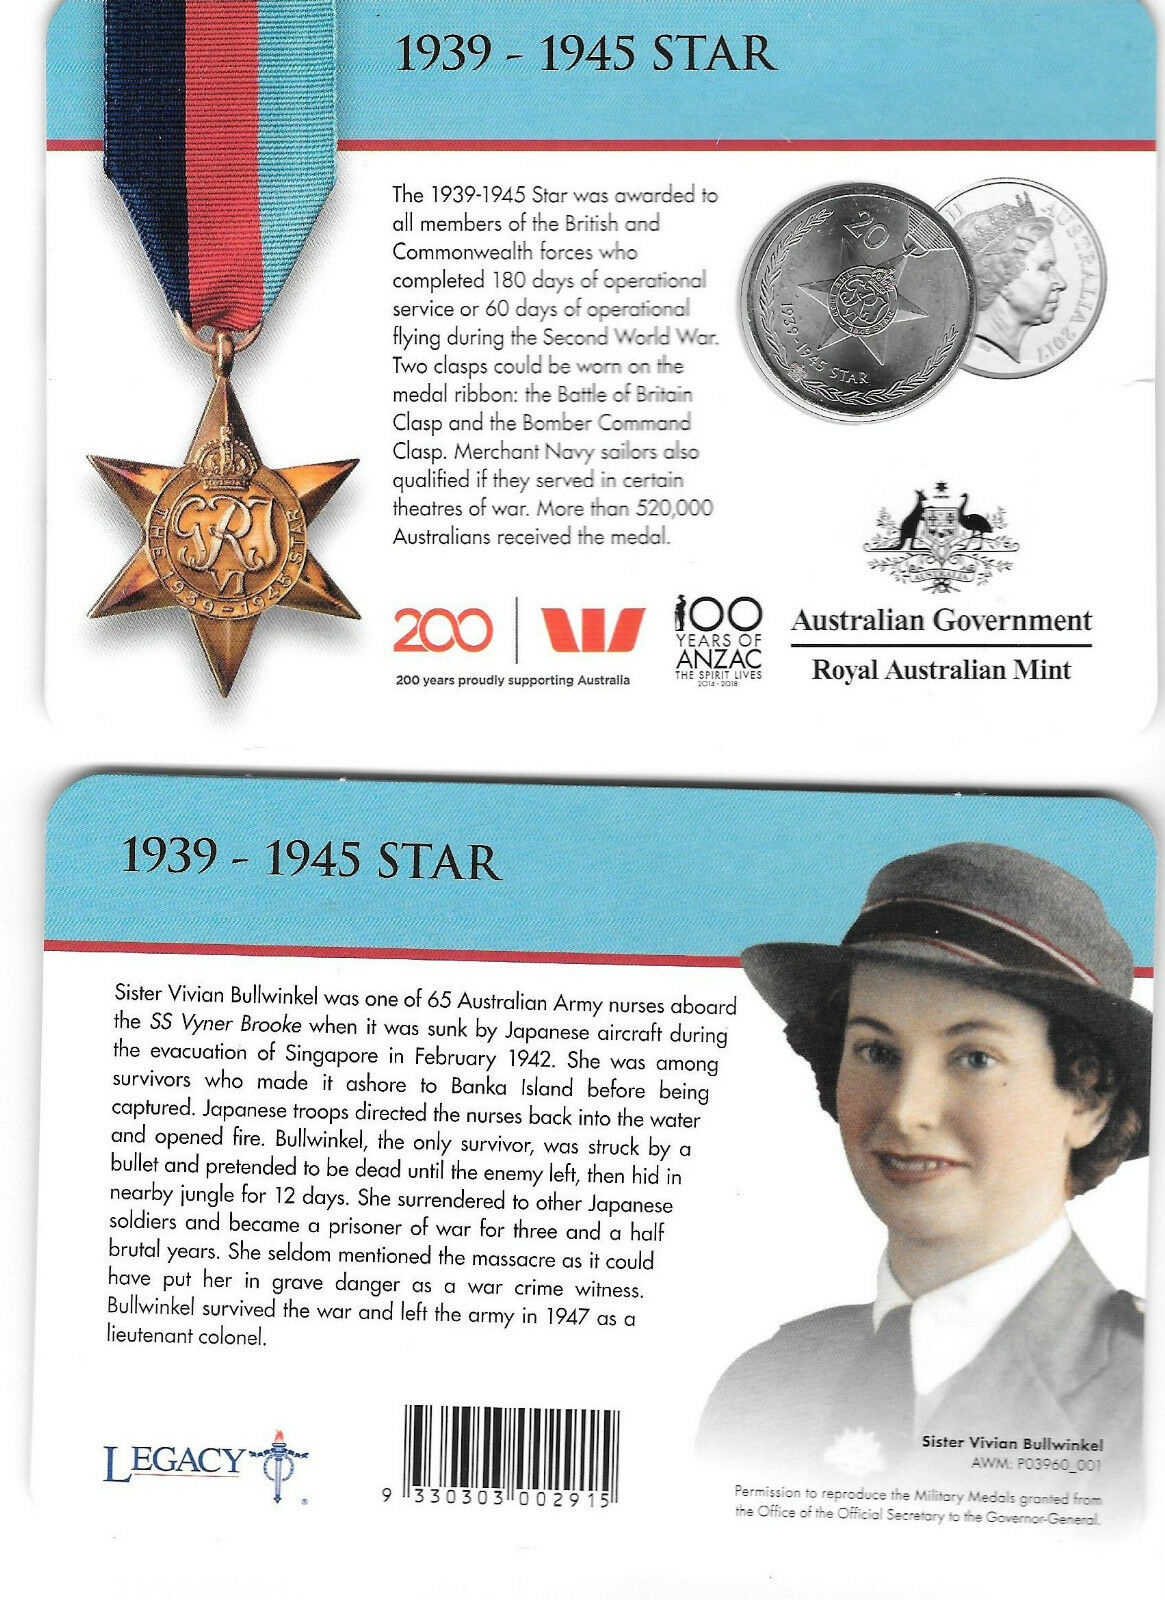 Thumbnail for 2017 Legends of the ANZACS - 1939-1945 Star